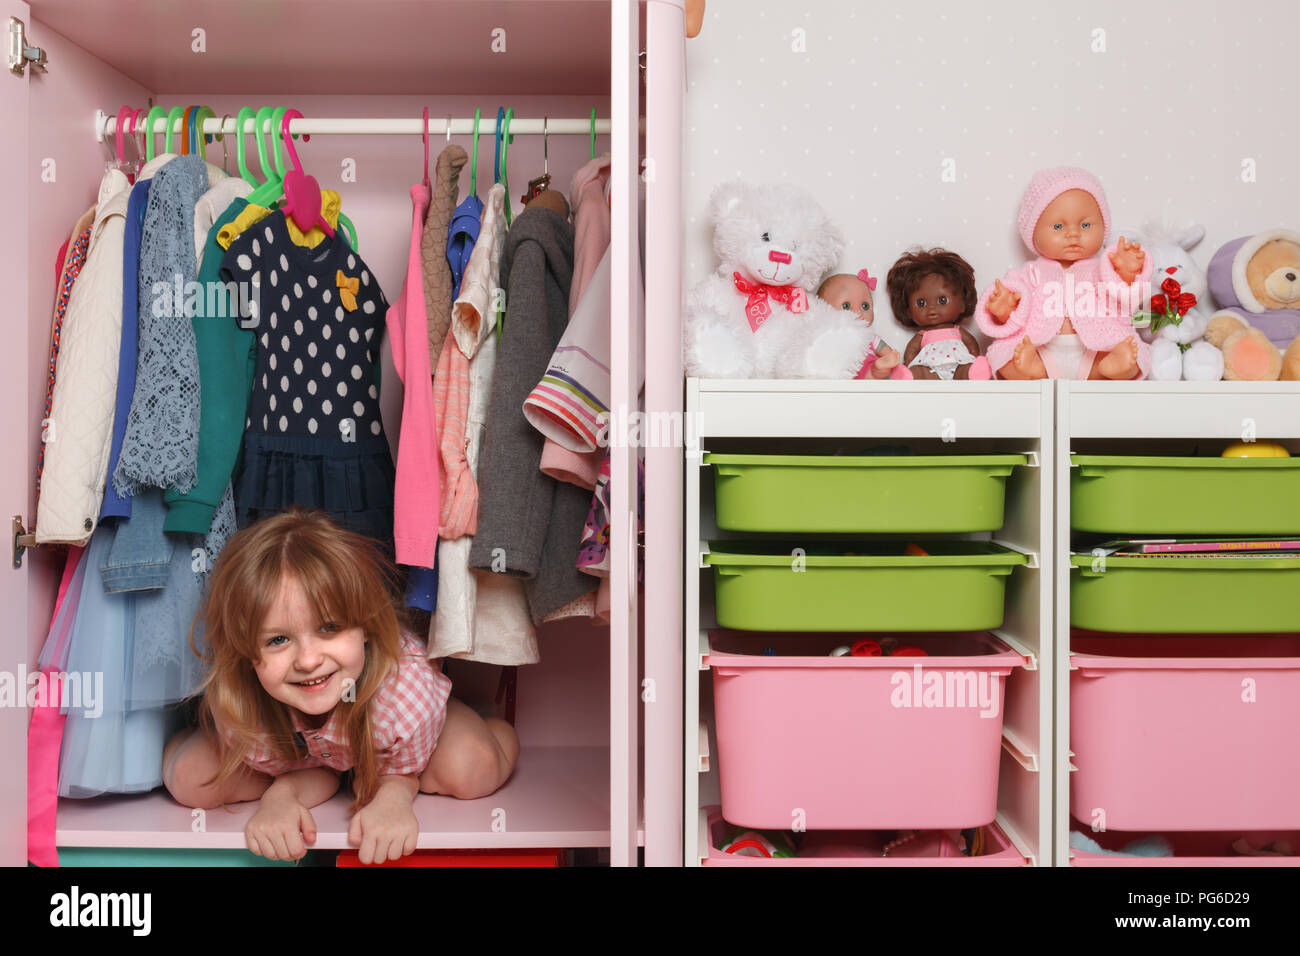 A little girl is sitting in a wardrobe with a children's department. Storage system for children's things - Stock Image